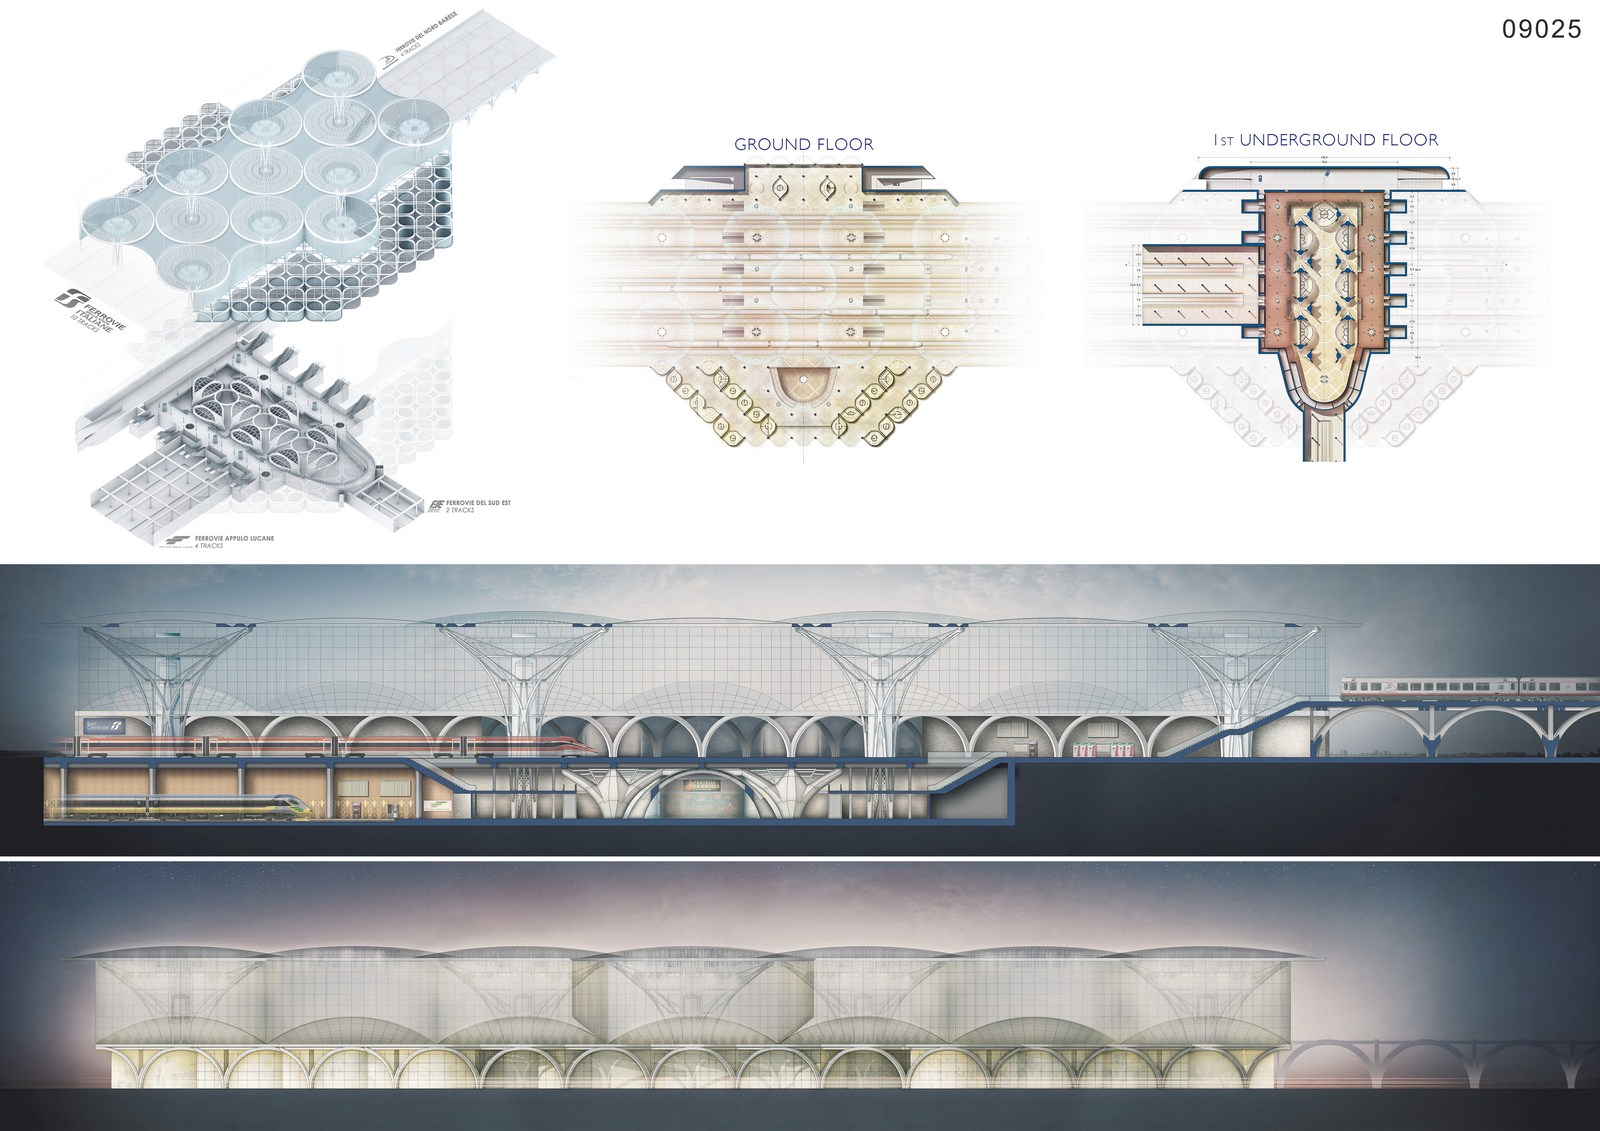 New Bari Central Station By Maurizio Barberio - Sheet3